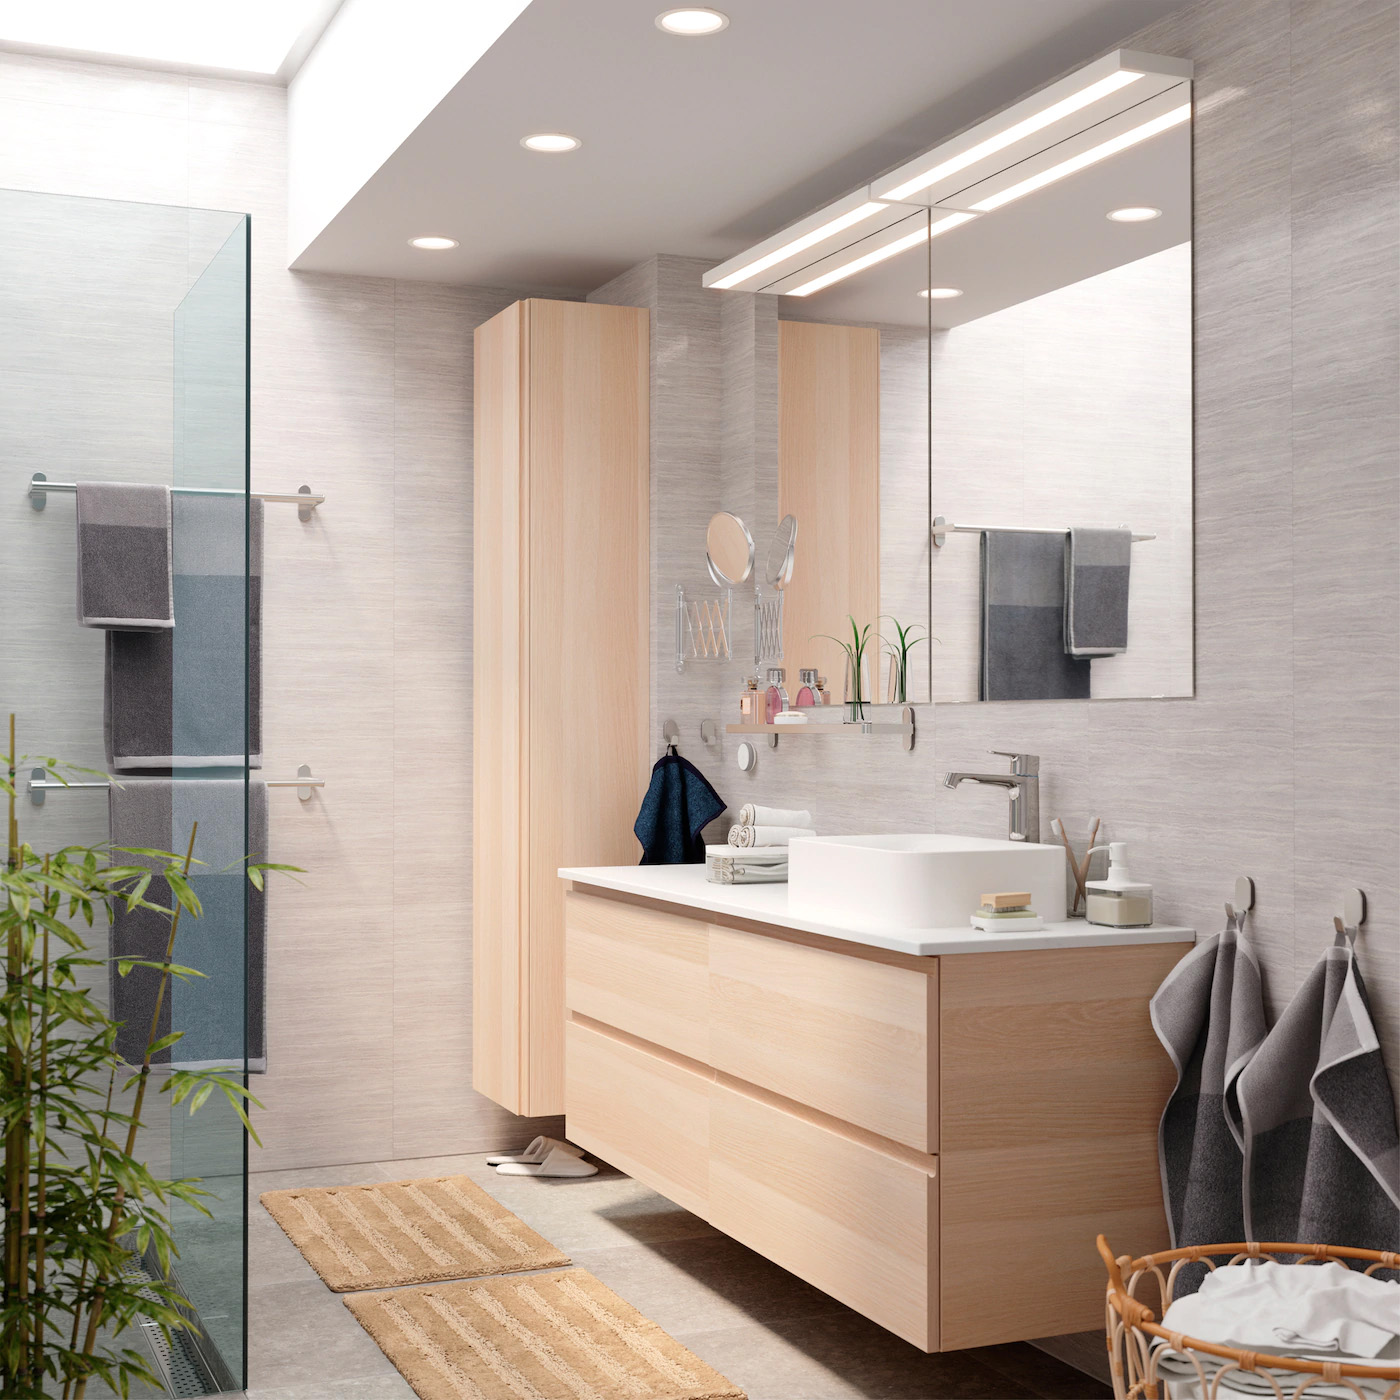 A bathroom with behind-the-scenes storage